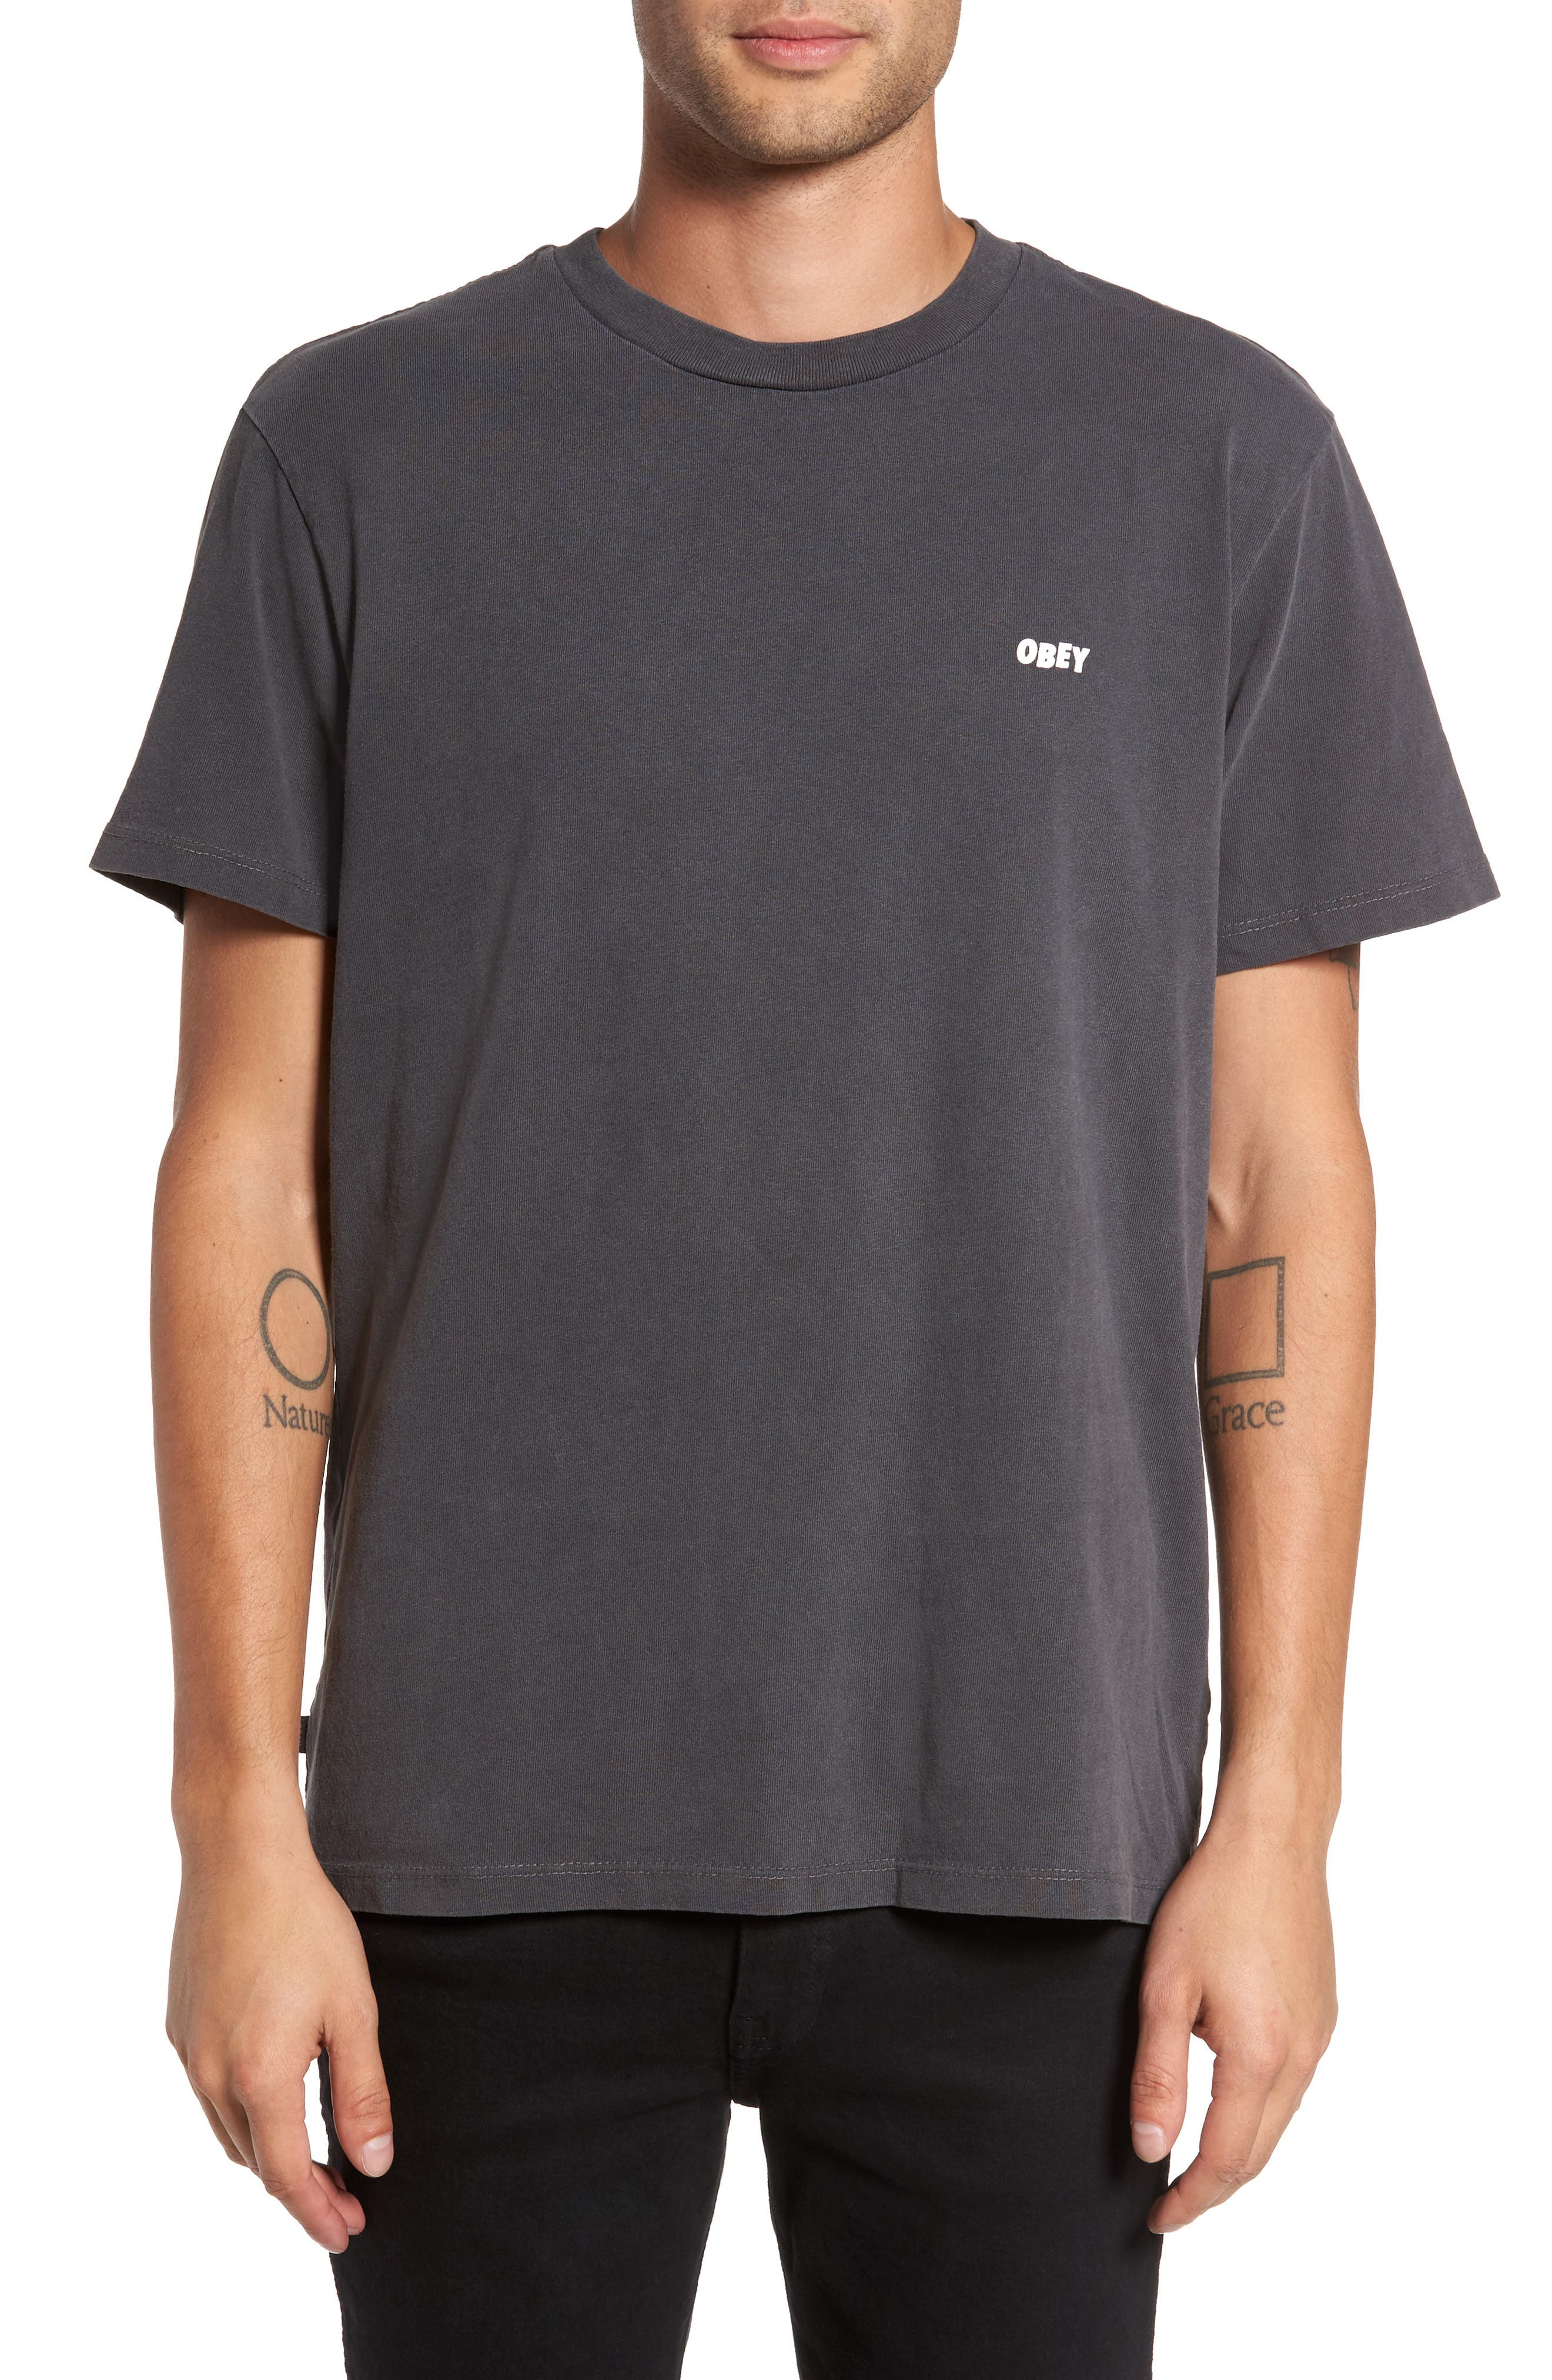 Eyes Graphic T-Shirt,                         Main,                         color, 011